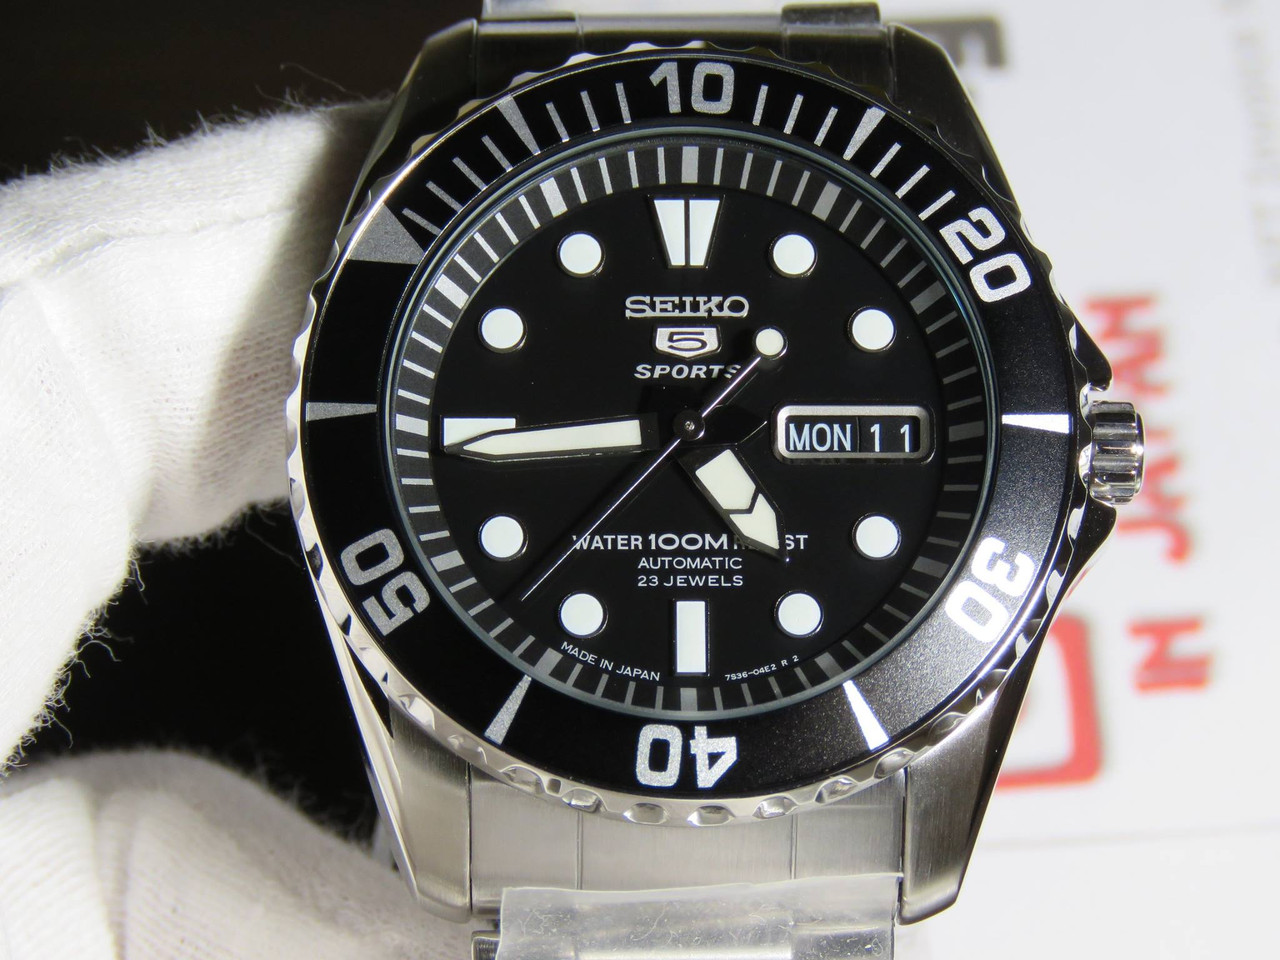 Seiko 5 Sports SNZF17J1 Made In Japan Version